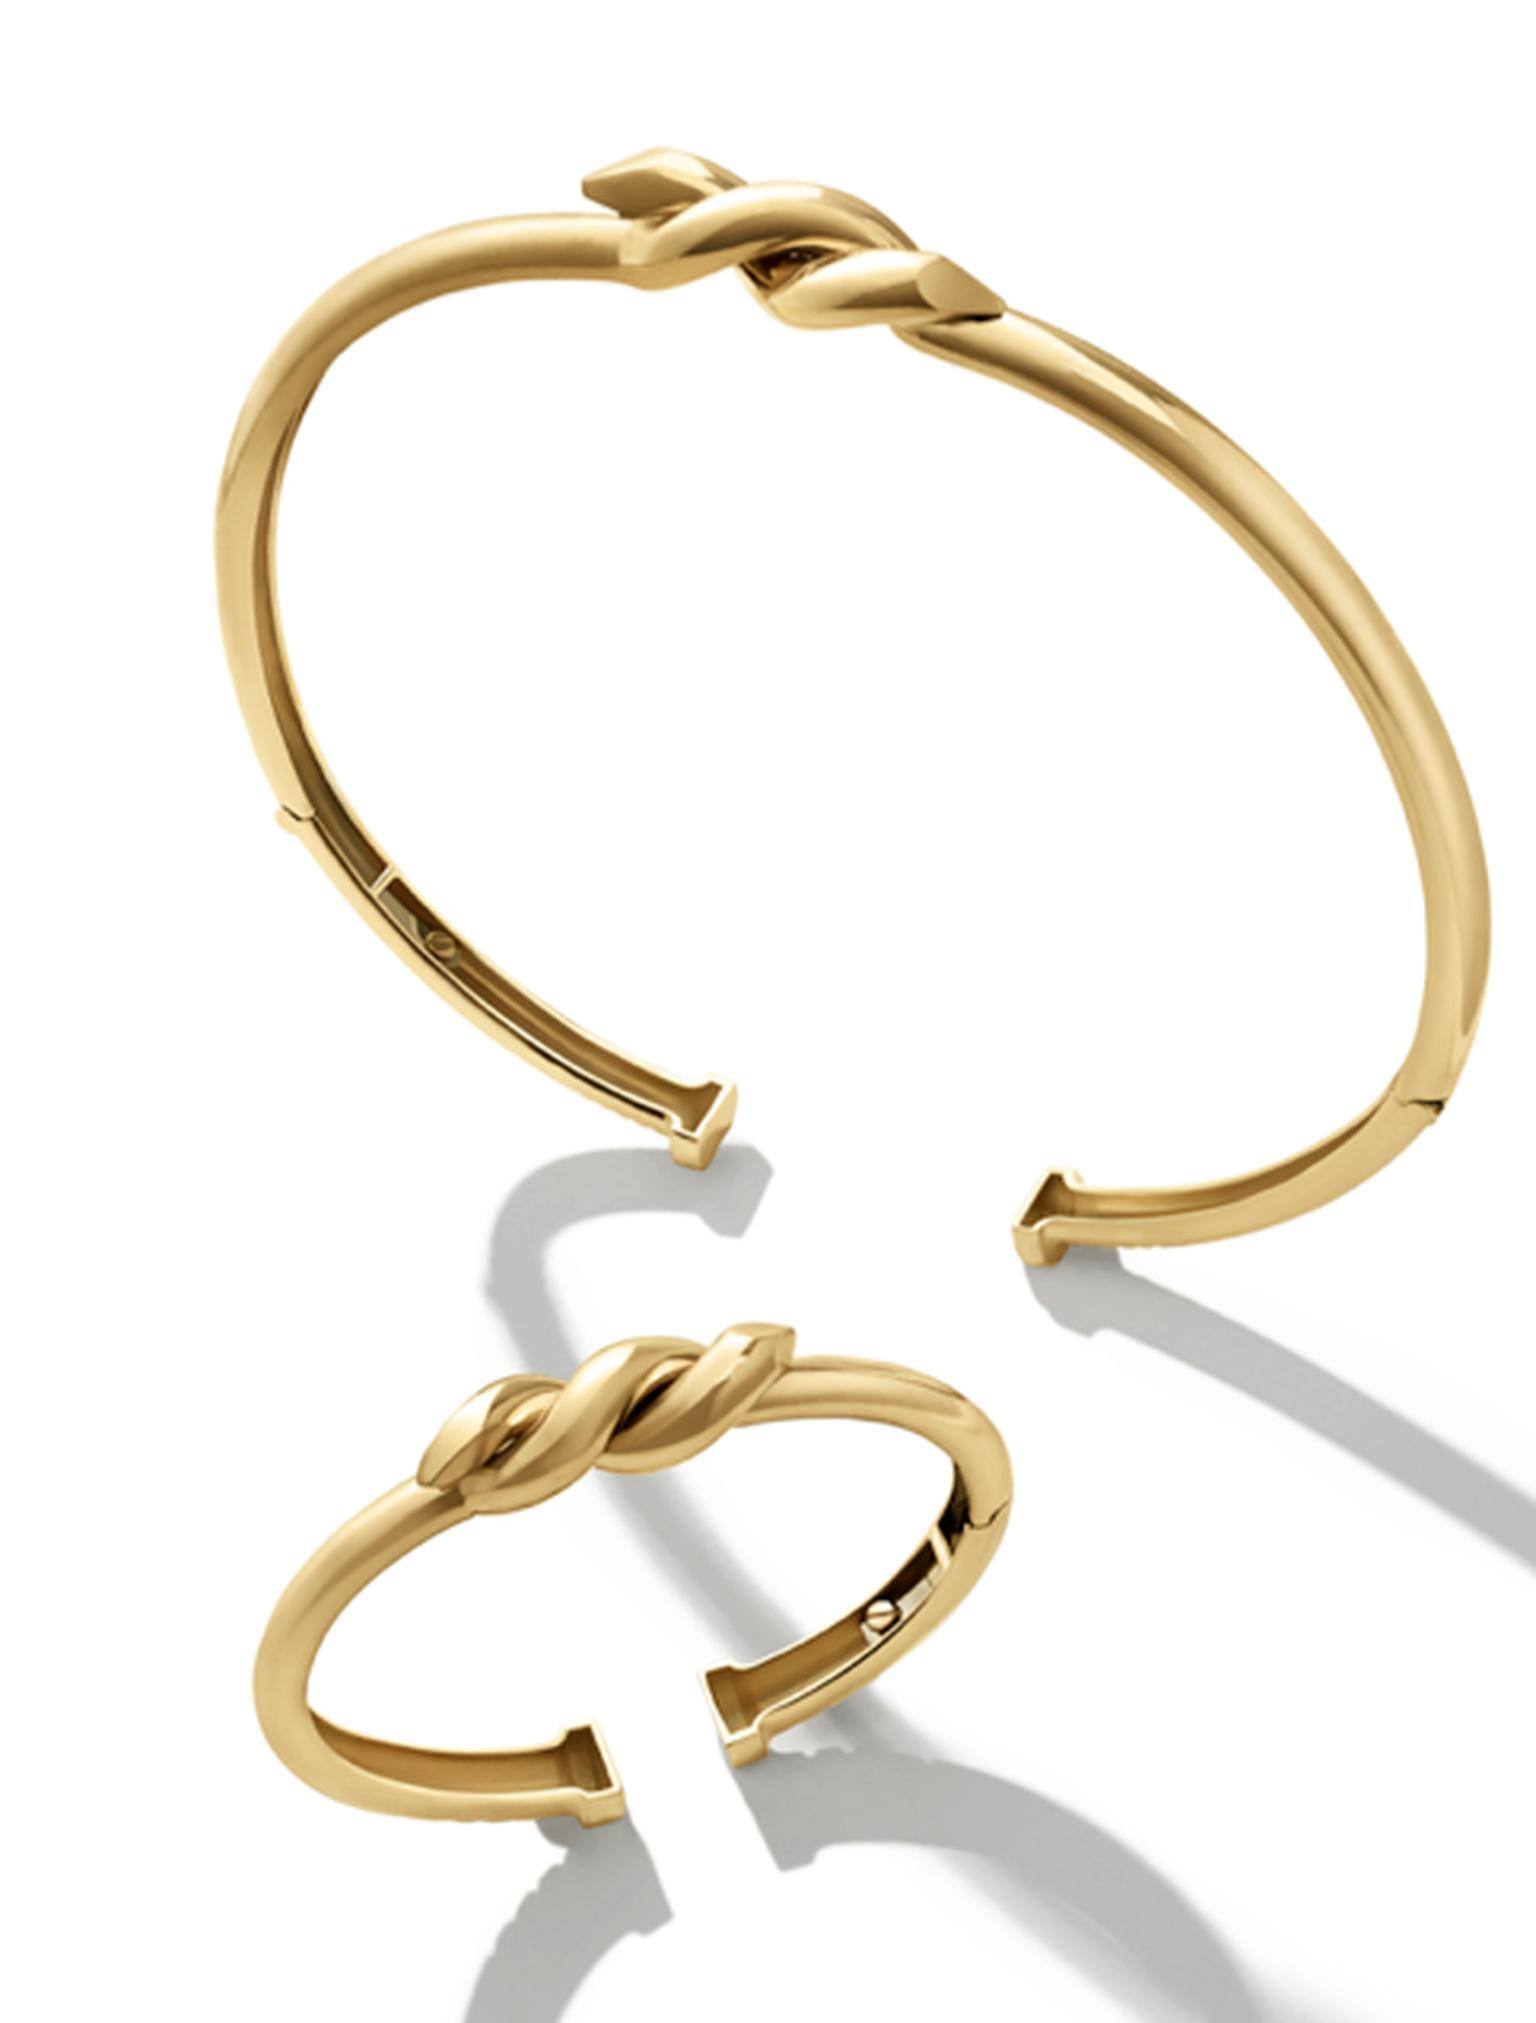 David Webb Twisted Nail gold collar and bangle, available from The Editorialist. The e-tailer also has an in-house concierge service that offers bespoke services, styling advice, and access to pre-ordering seasonal items.